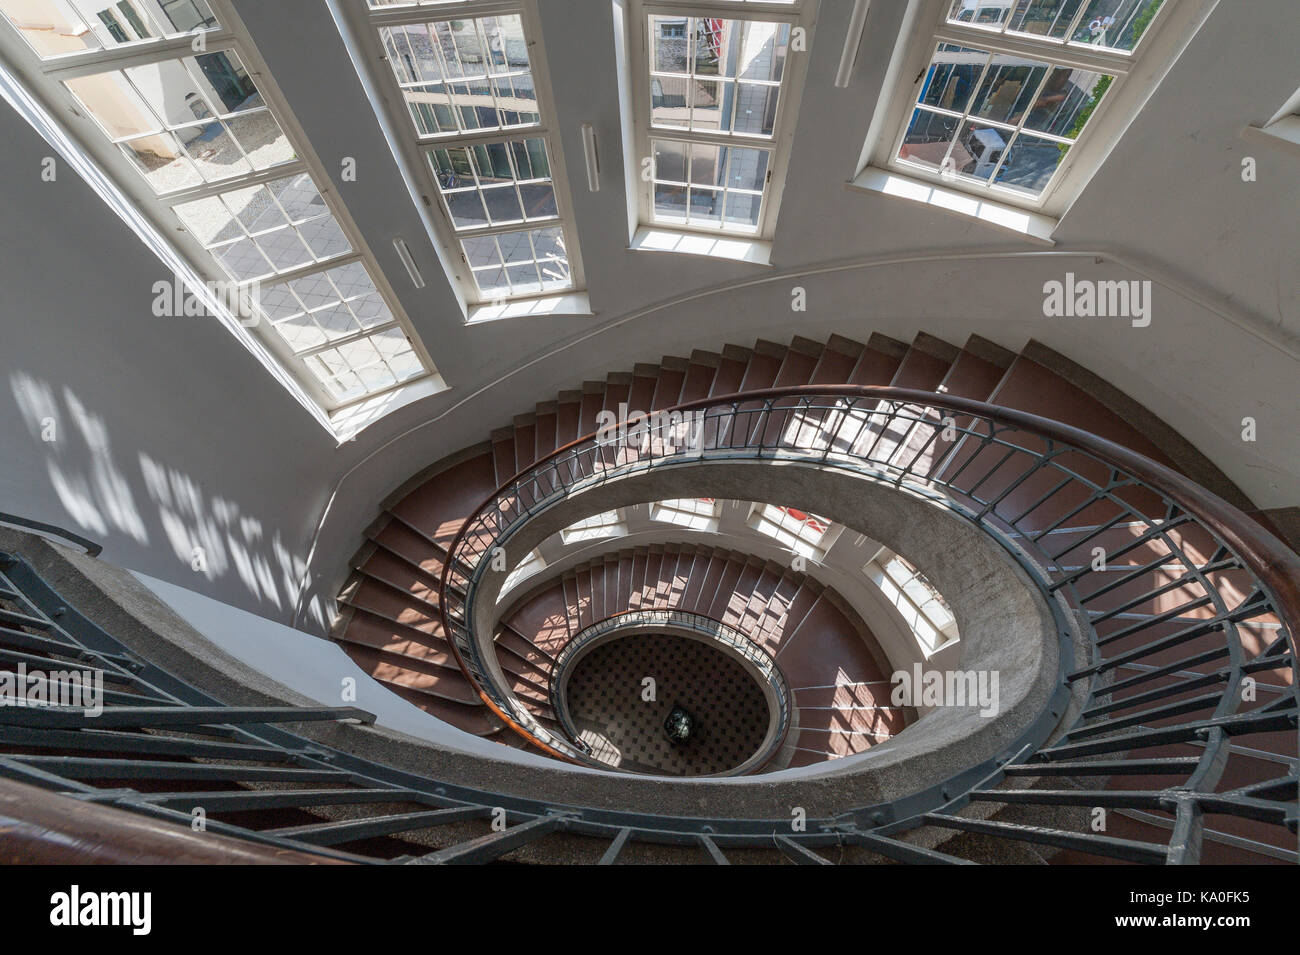 Spiral staircase, main building of the Bauhaus-University, UNESCO World Heritage Site, Weimar, Thuringia, Germany - Stock Image